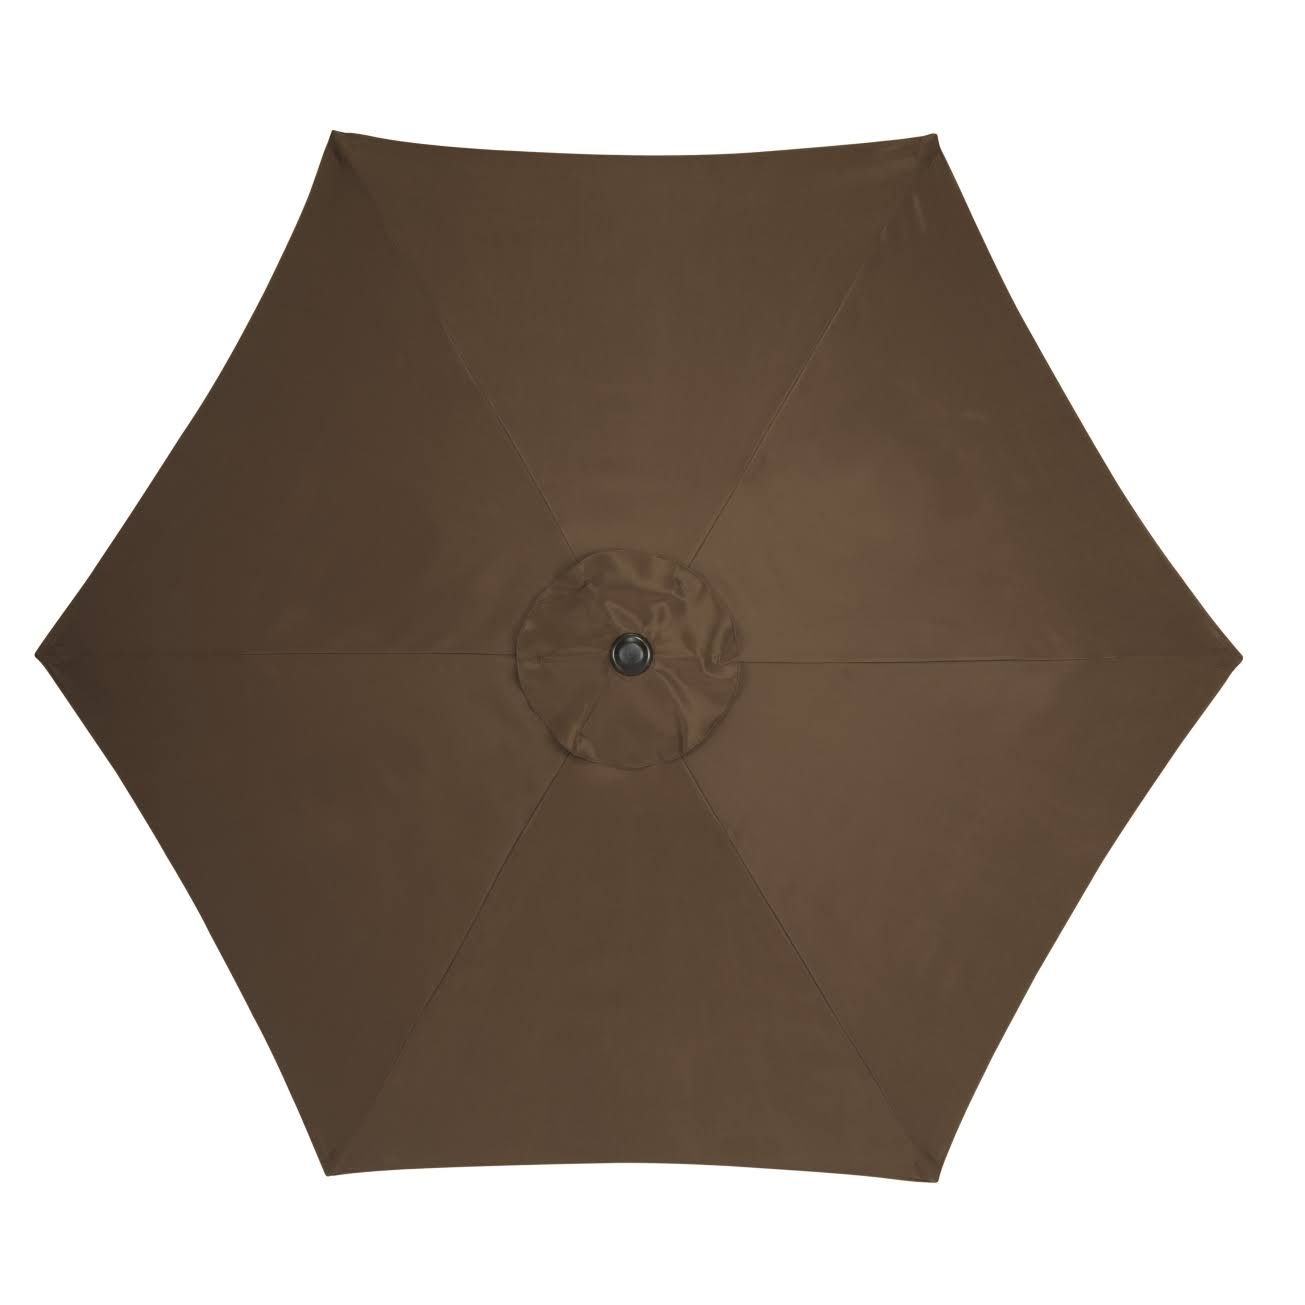 Living Accents Market Umbrella - Brown, 9'